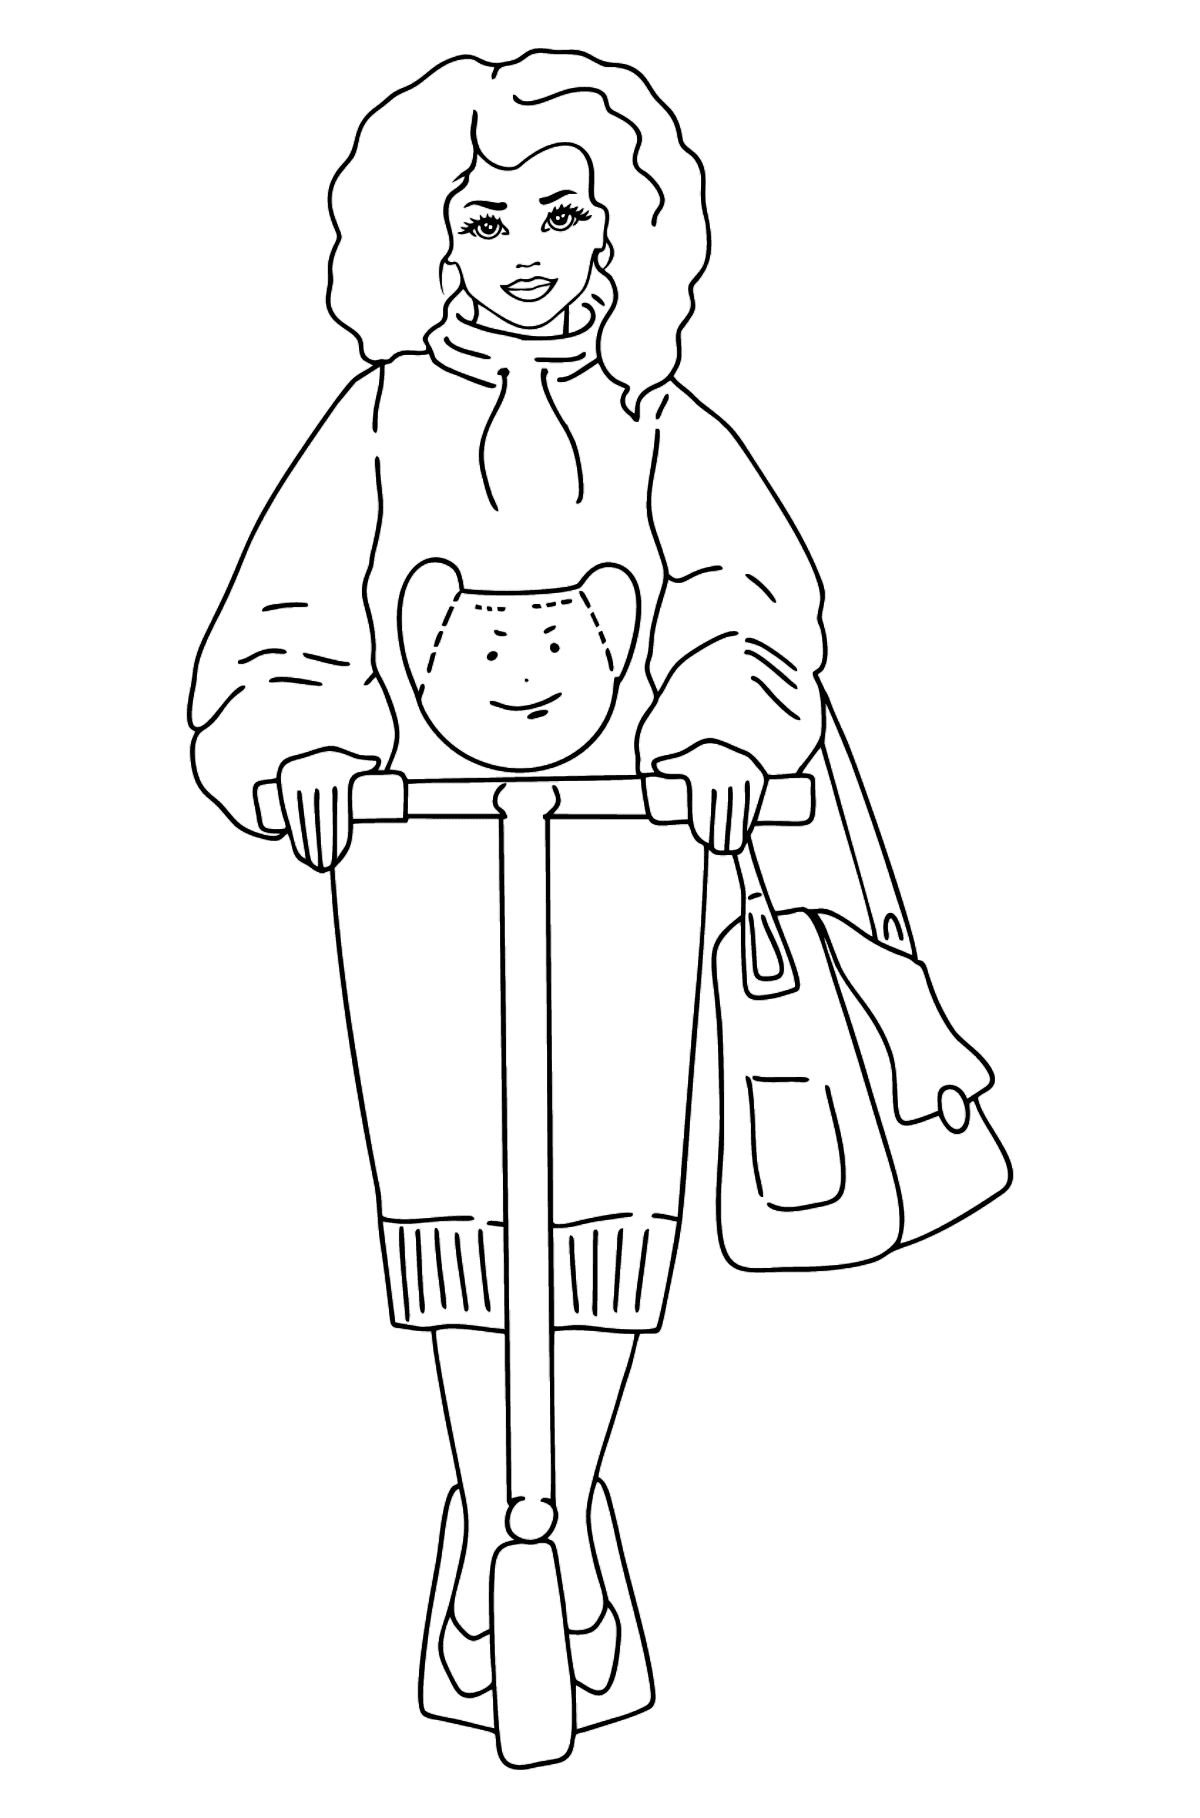 Barbie Doll Riding a Scooter coloring page - Coloring Pages for Kids